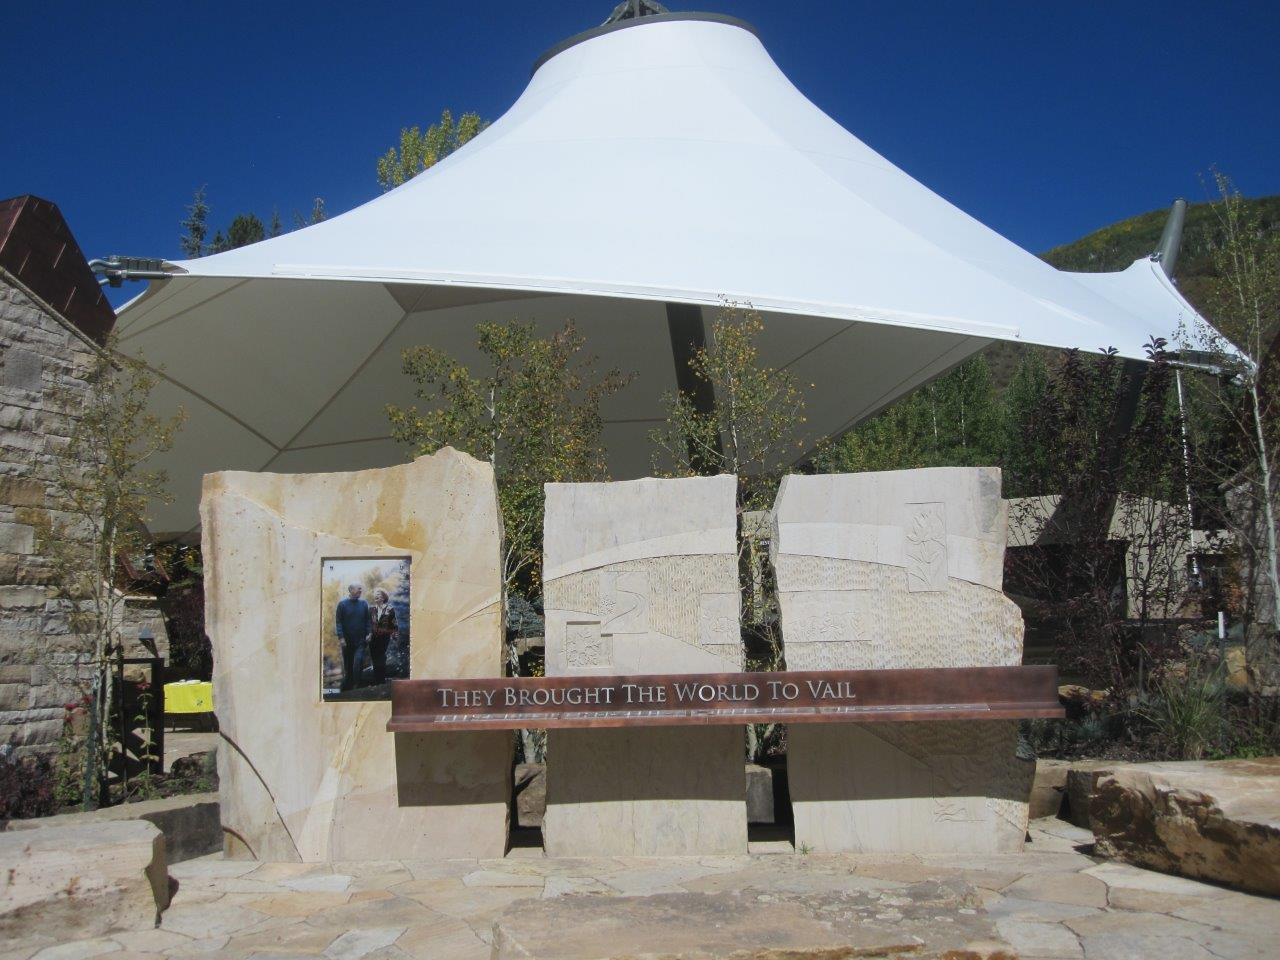 Monument to Gerald and Betty Ford at amphitheater